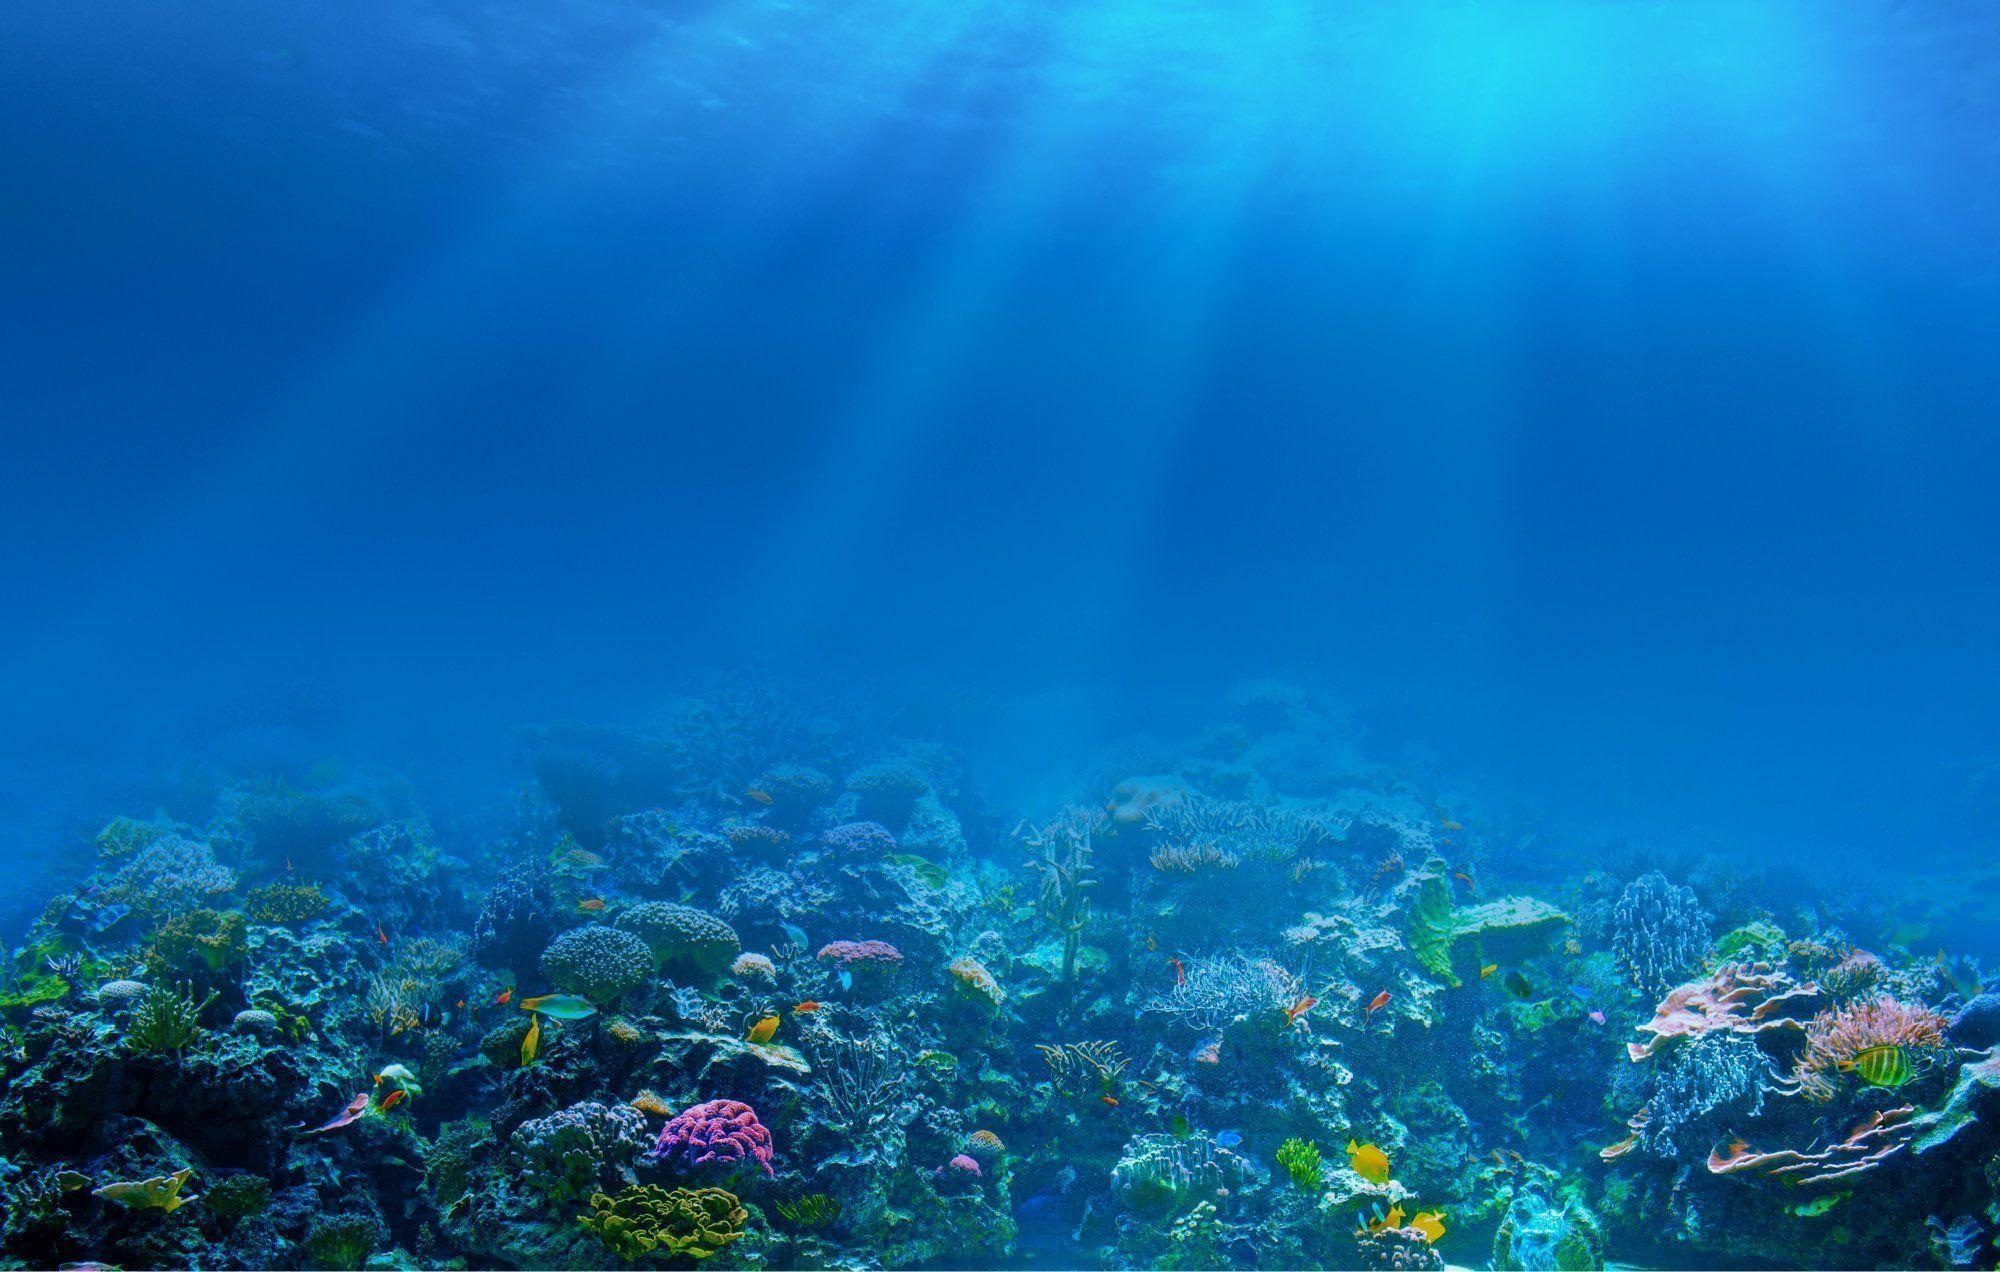 Coral Reef Backgrounds - Wallpaper Cave